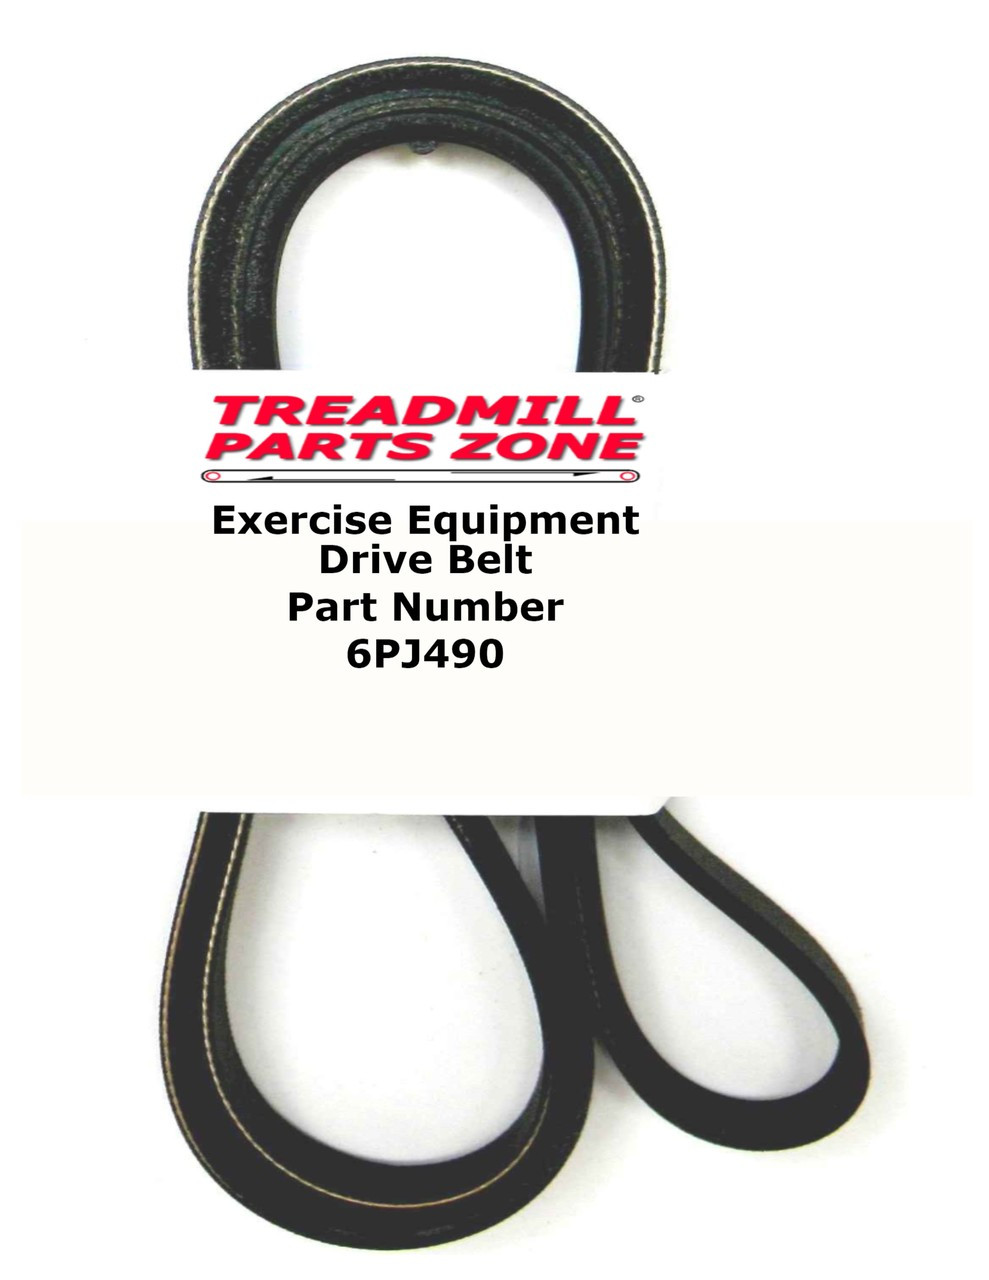 Exercise Equipment Drive Belt Part Number 6PJ490